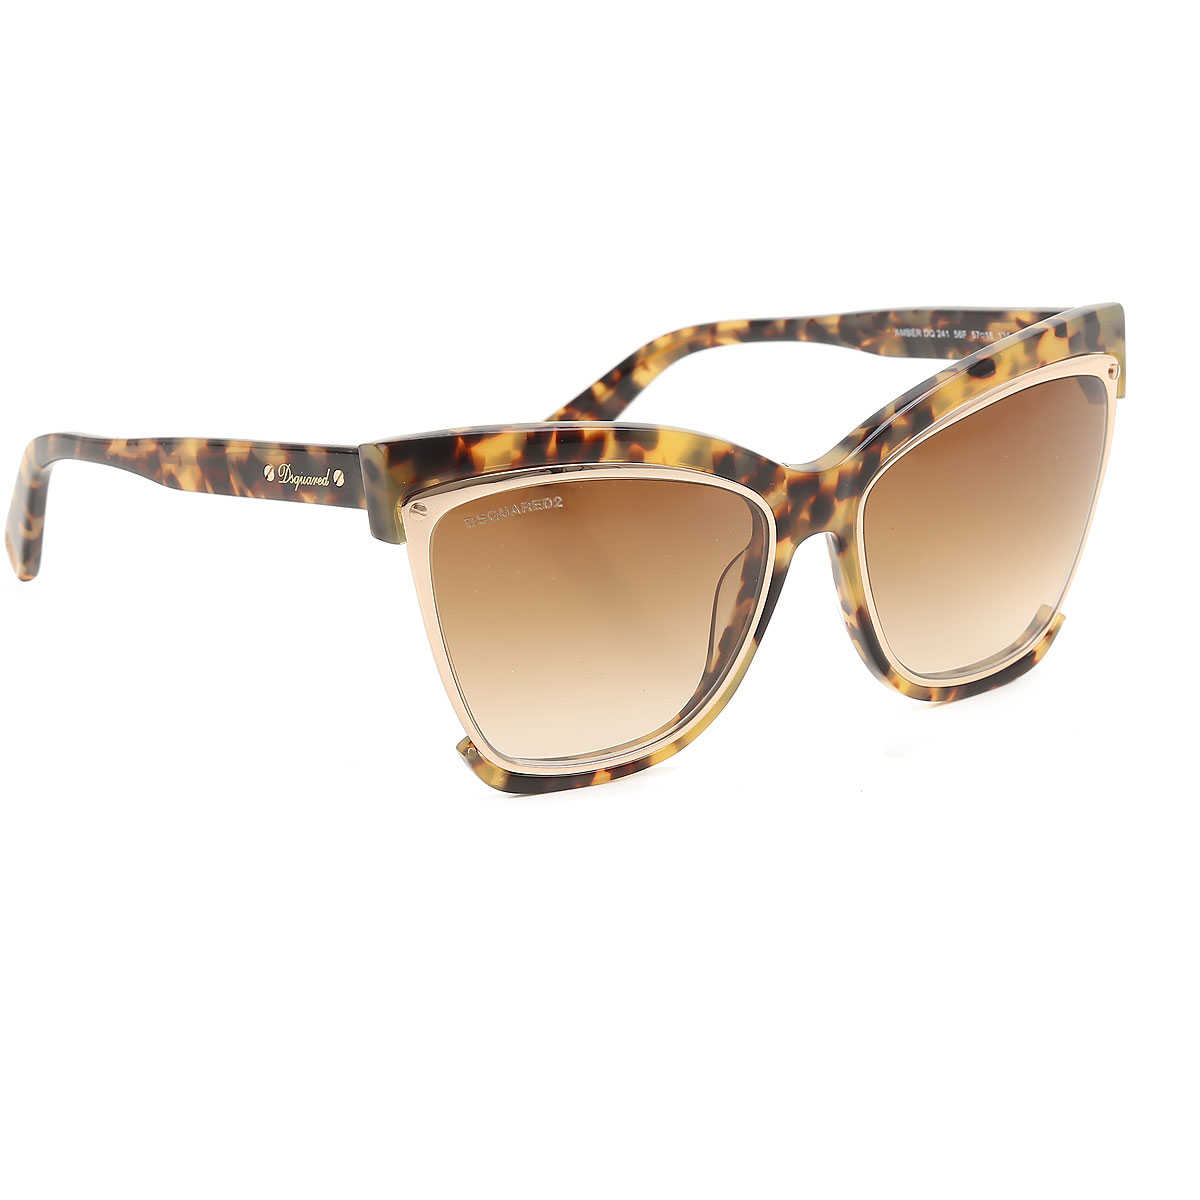 Dsquared2 Sunglasses On Sale